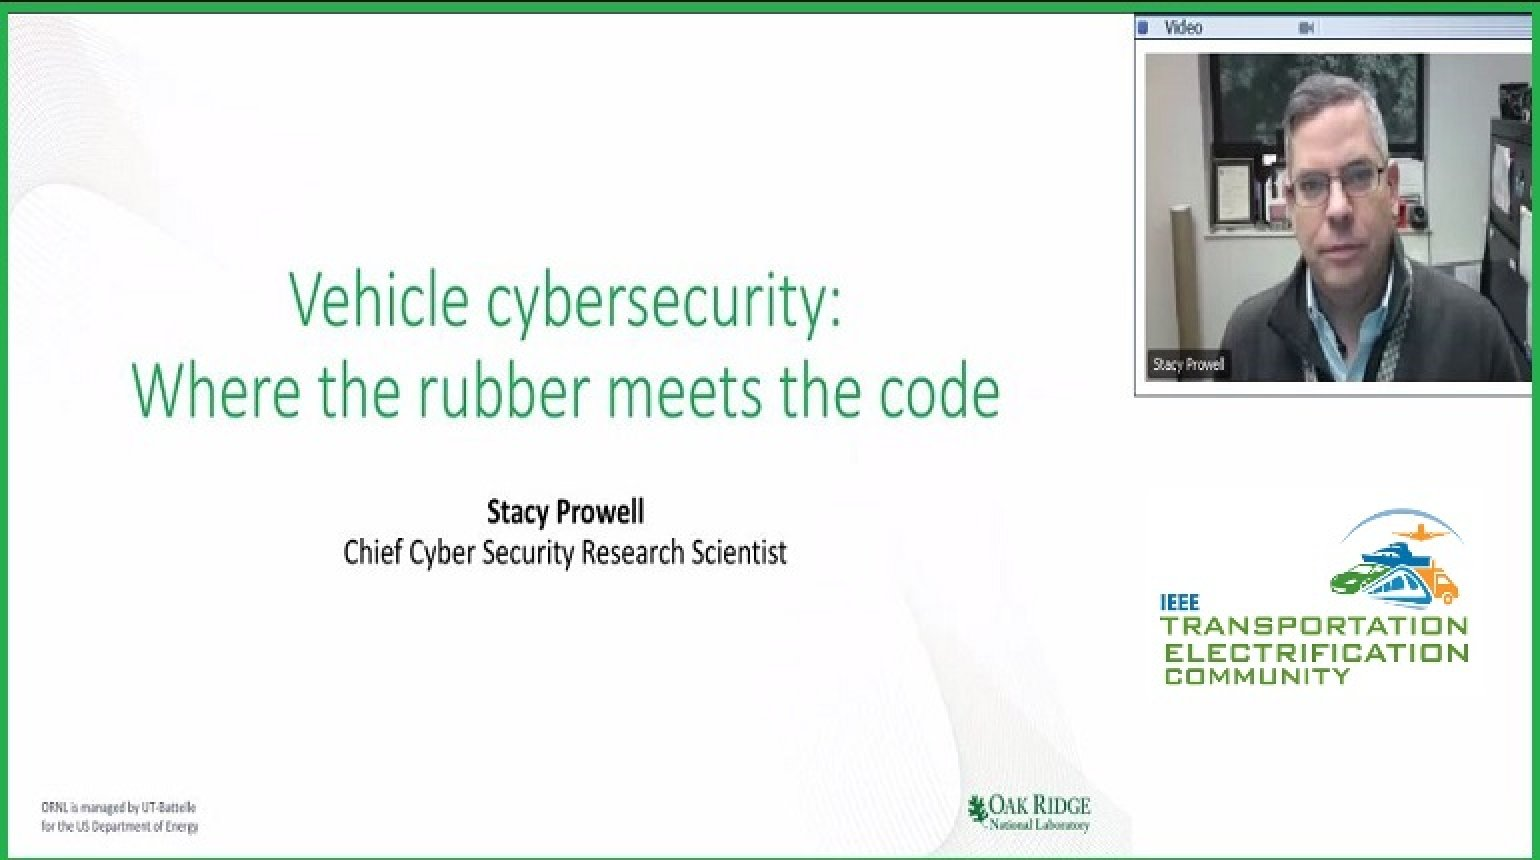 Video - Vehicle Cyber Security: Where the Rubber Meets the Code